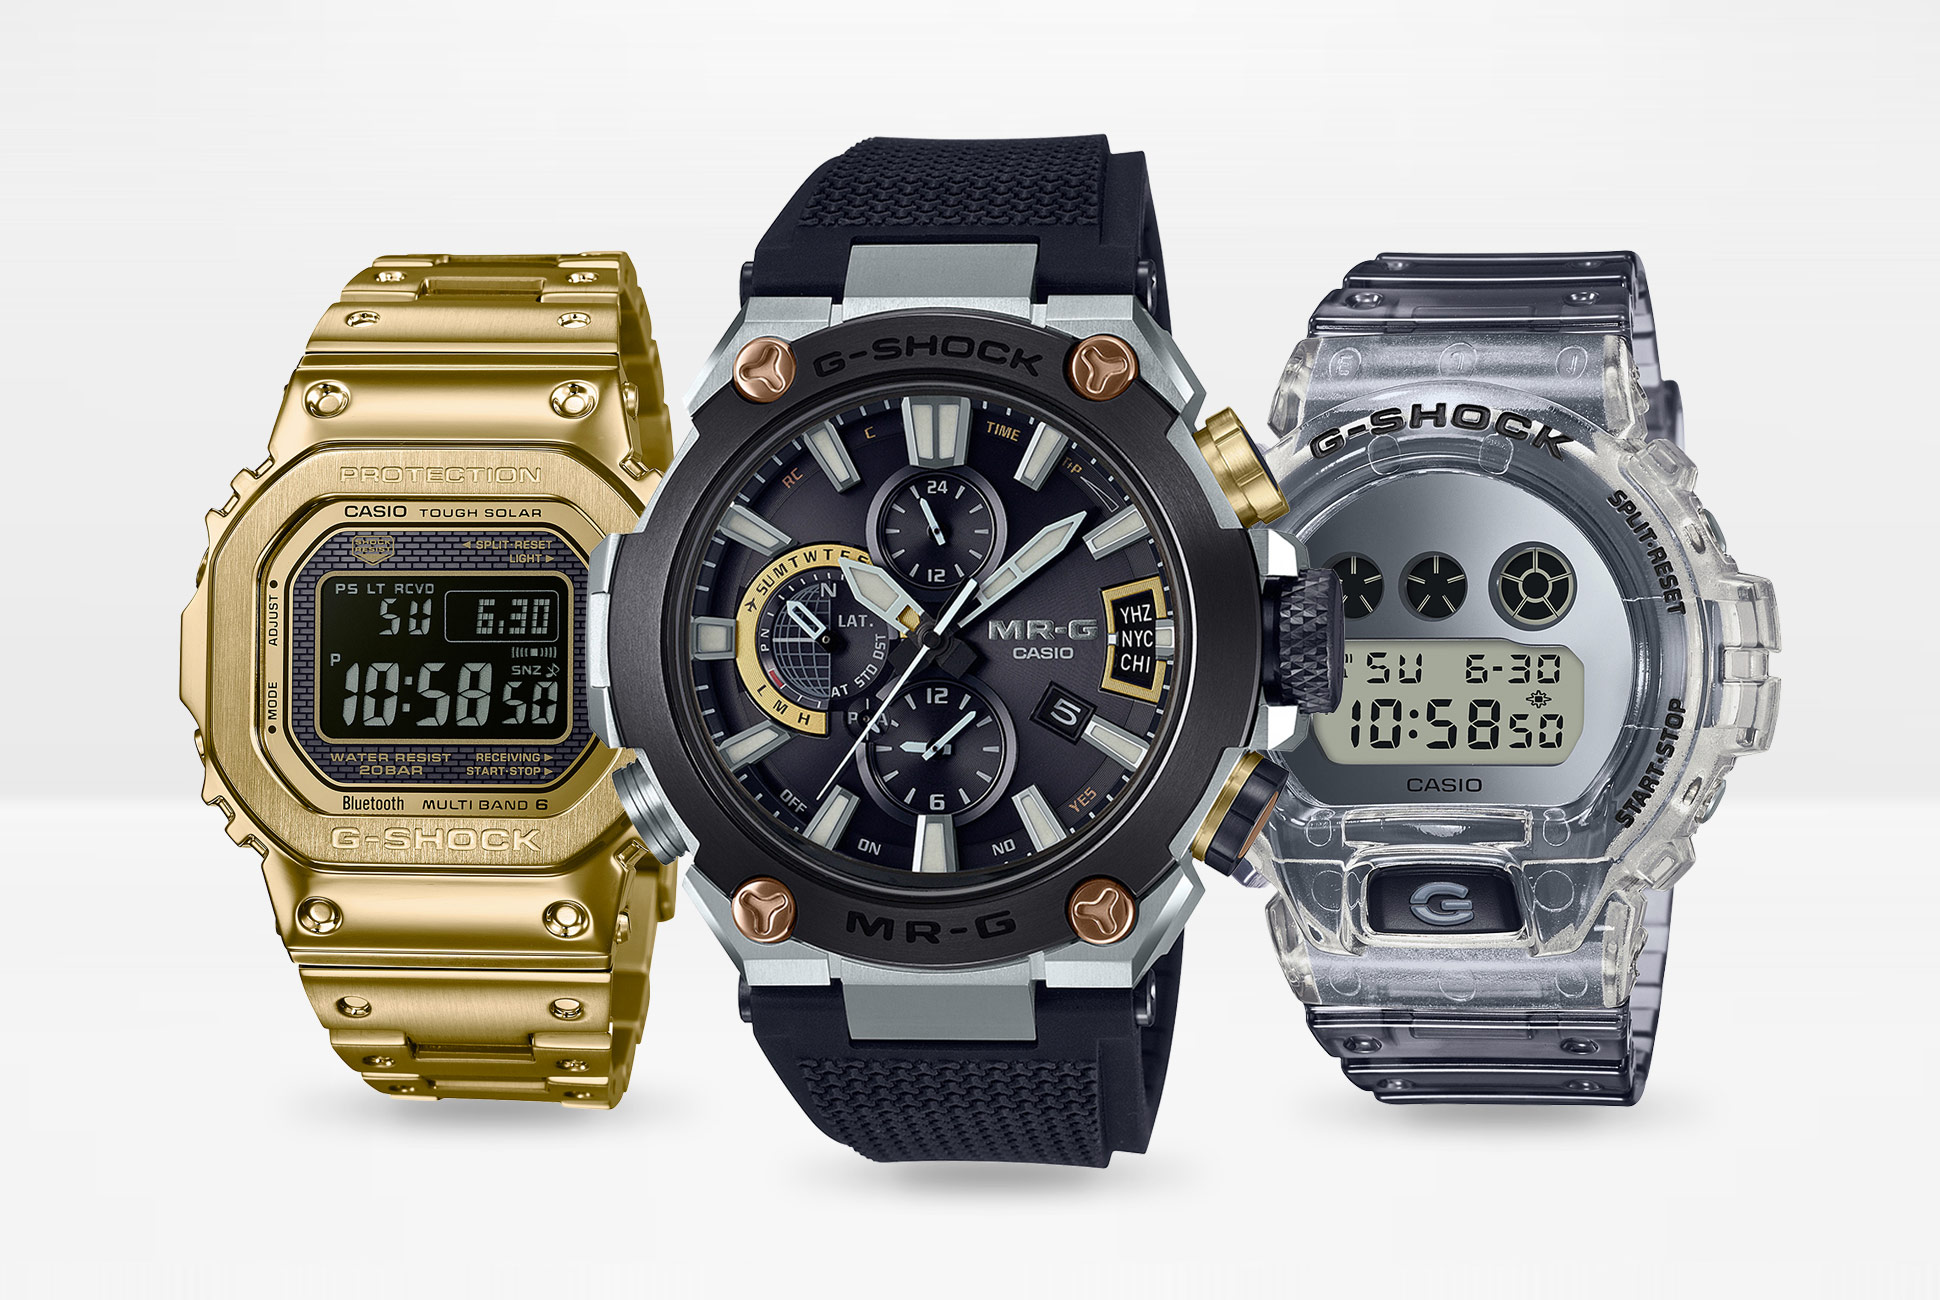 RECOMMENDED READING: The complete Casio G-Shock buying guide